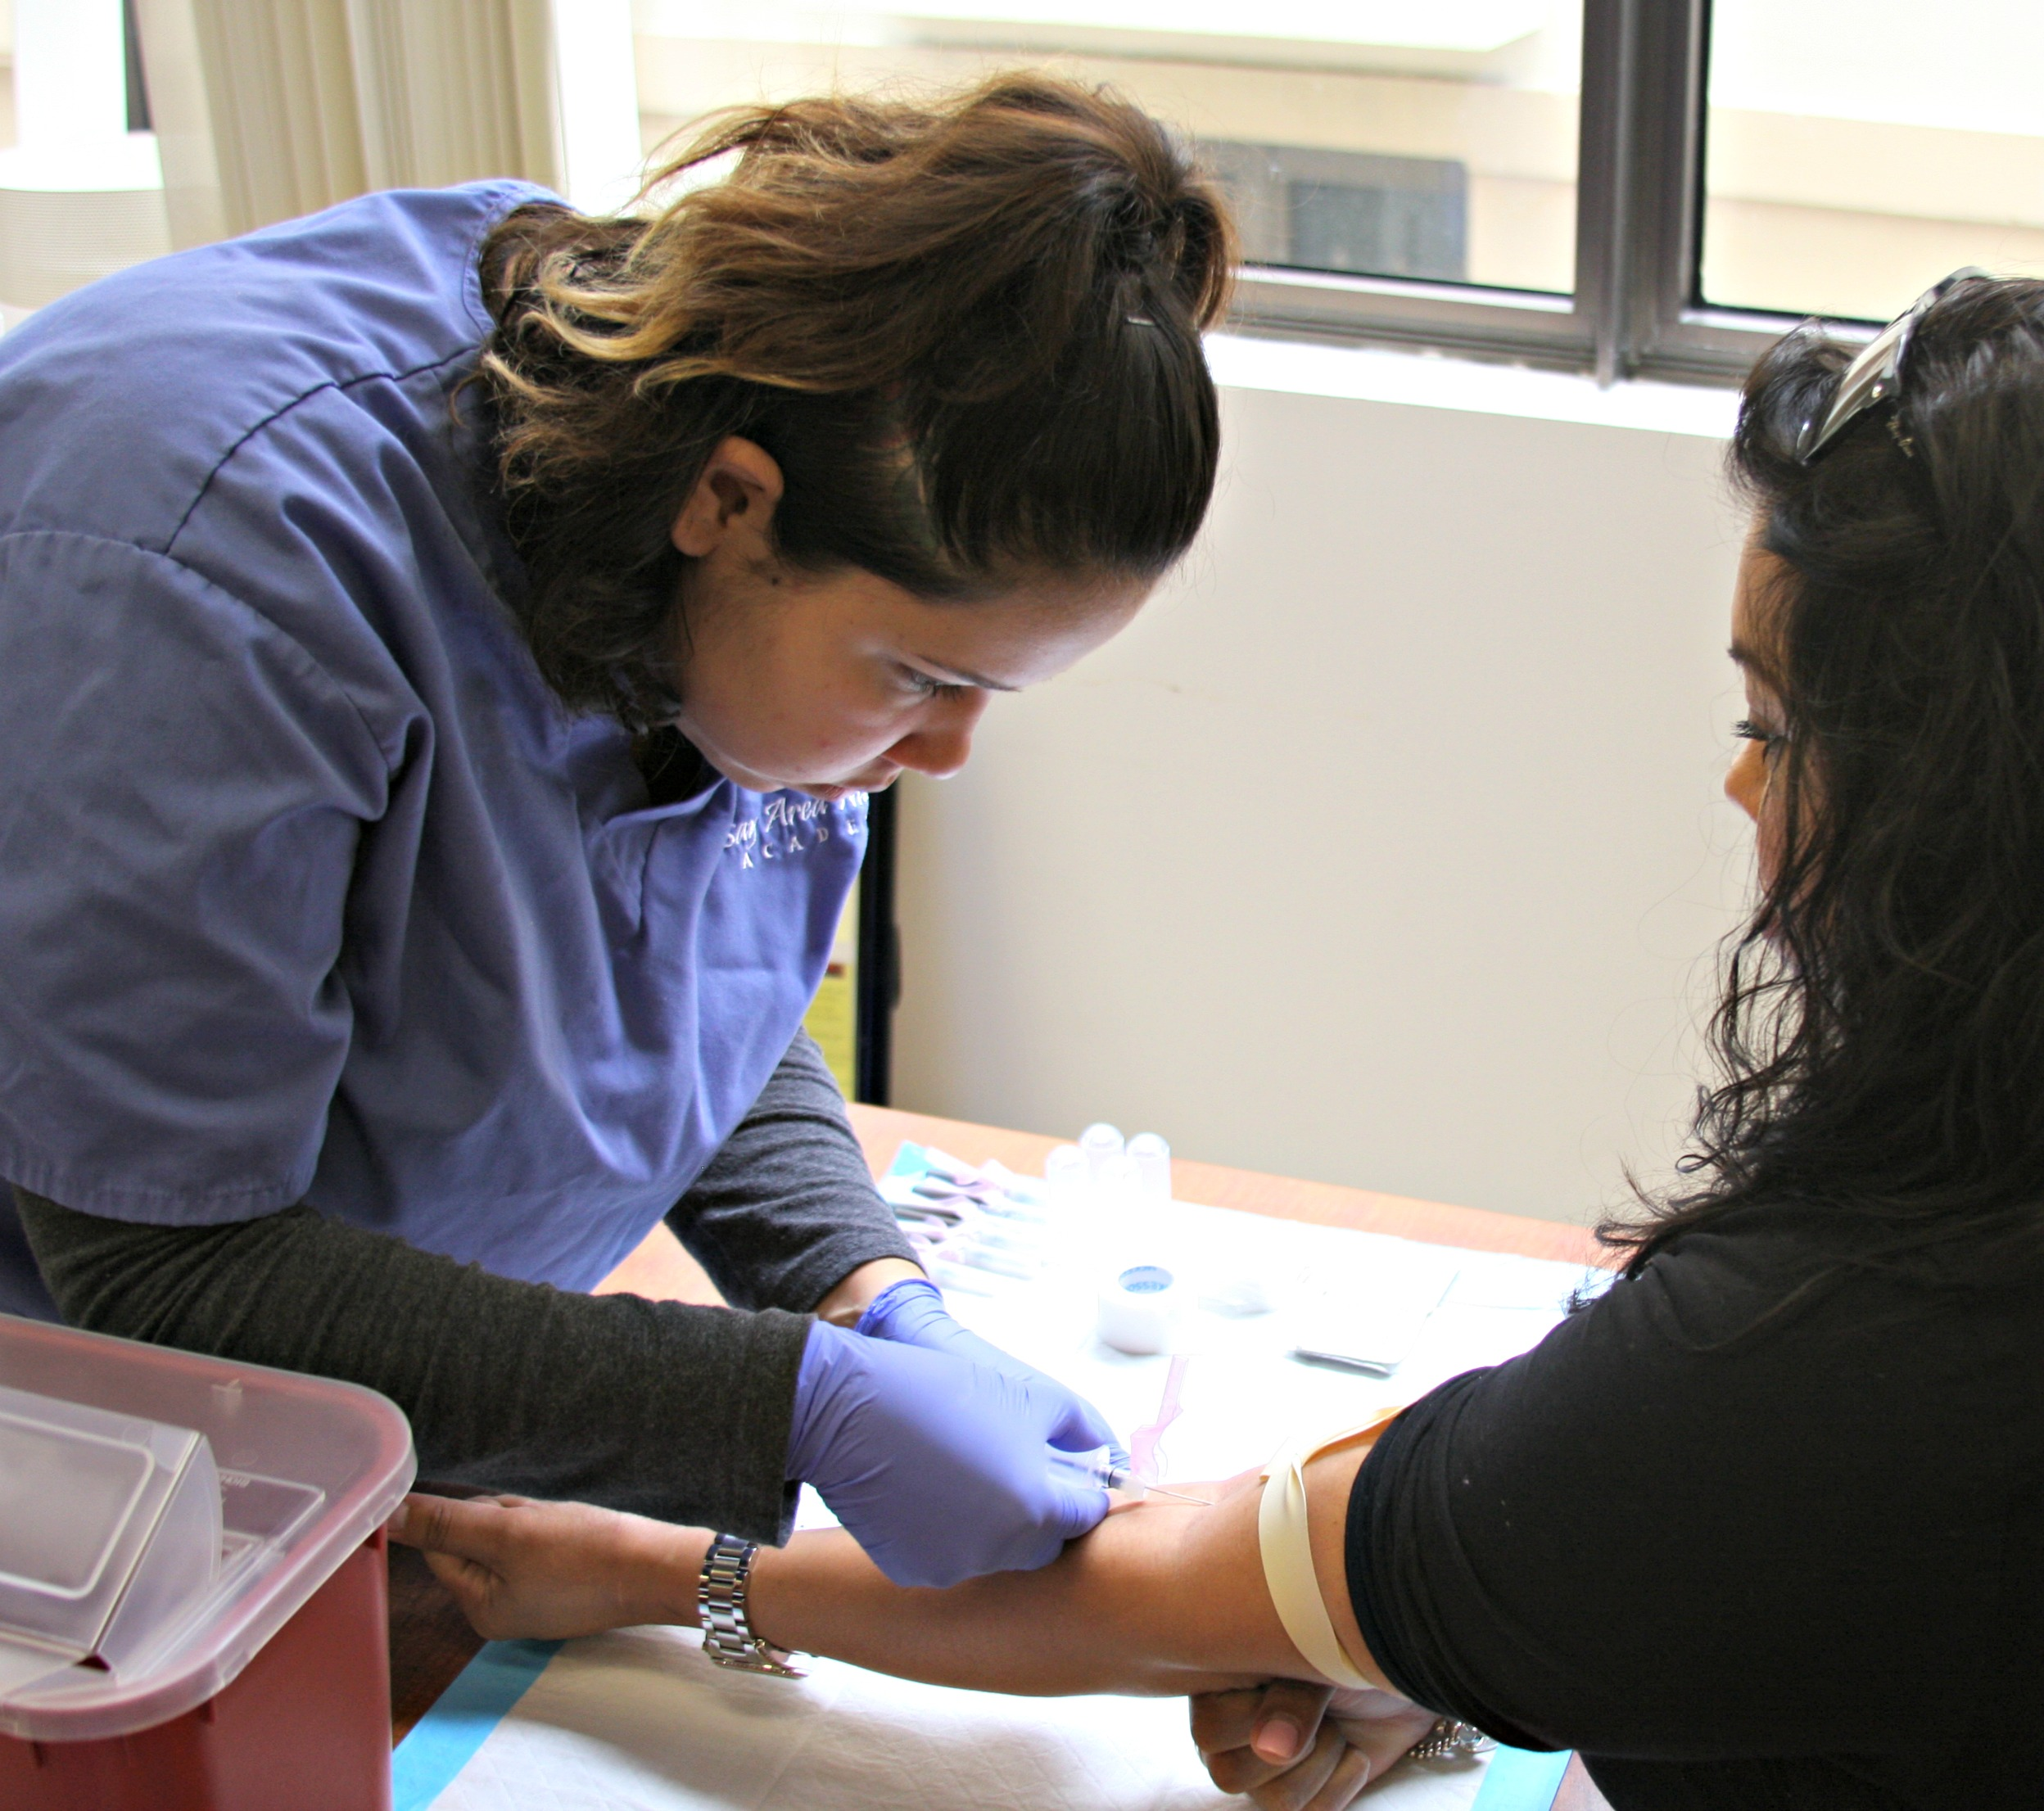 A Medical Assistant student learning phlebotomy